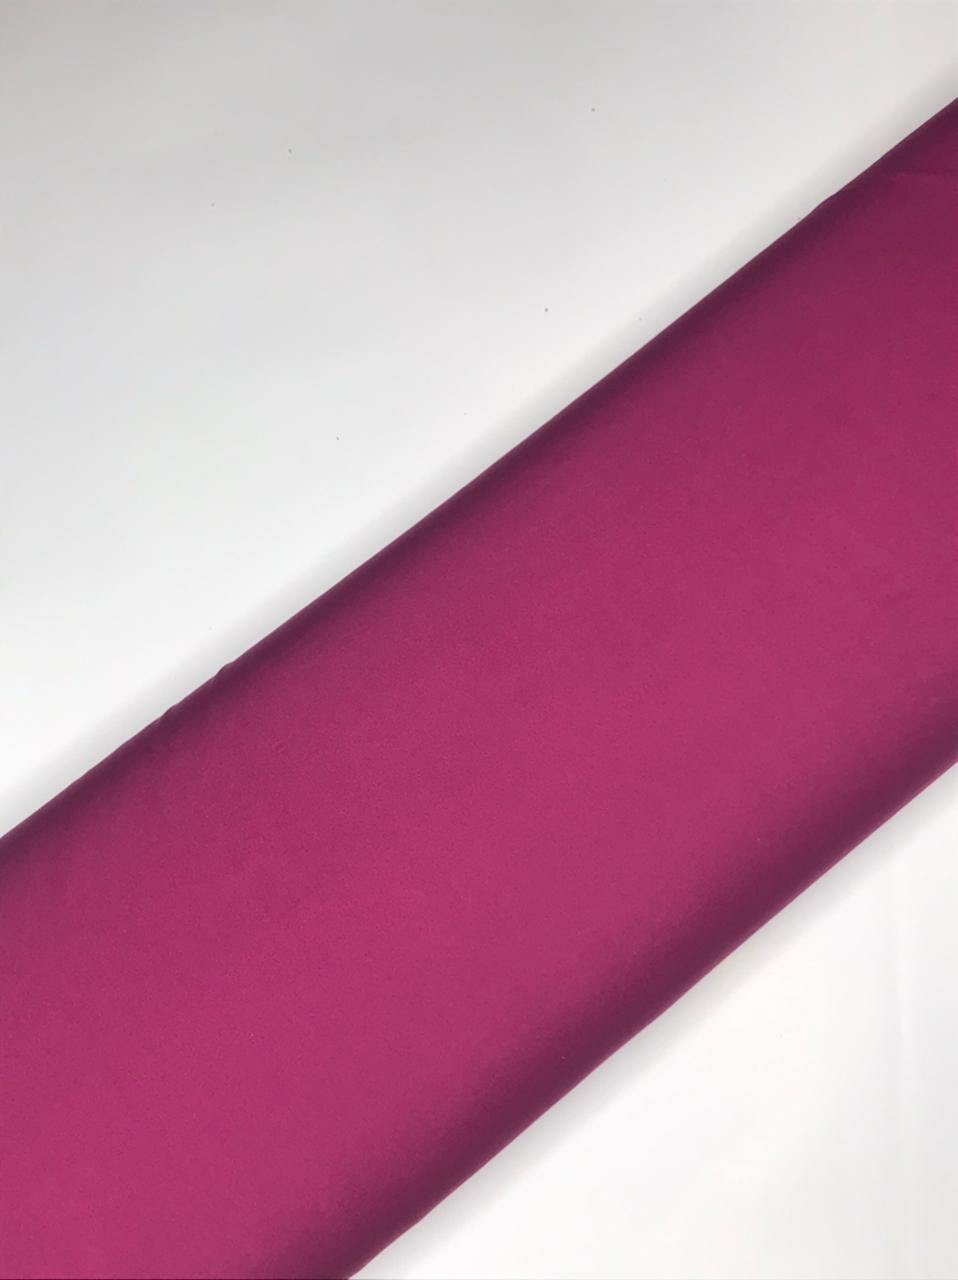 Knitted Stretchable Magenta ITY Fabric (Width - 58 Inches)